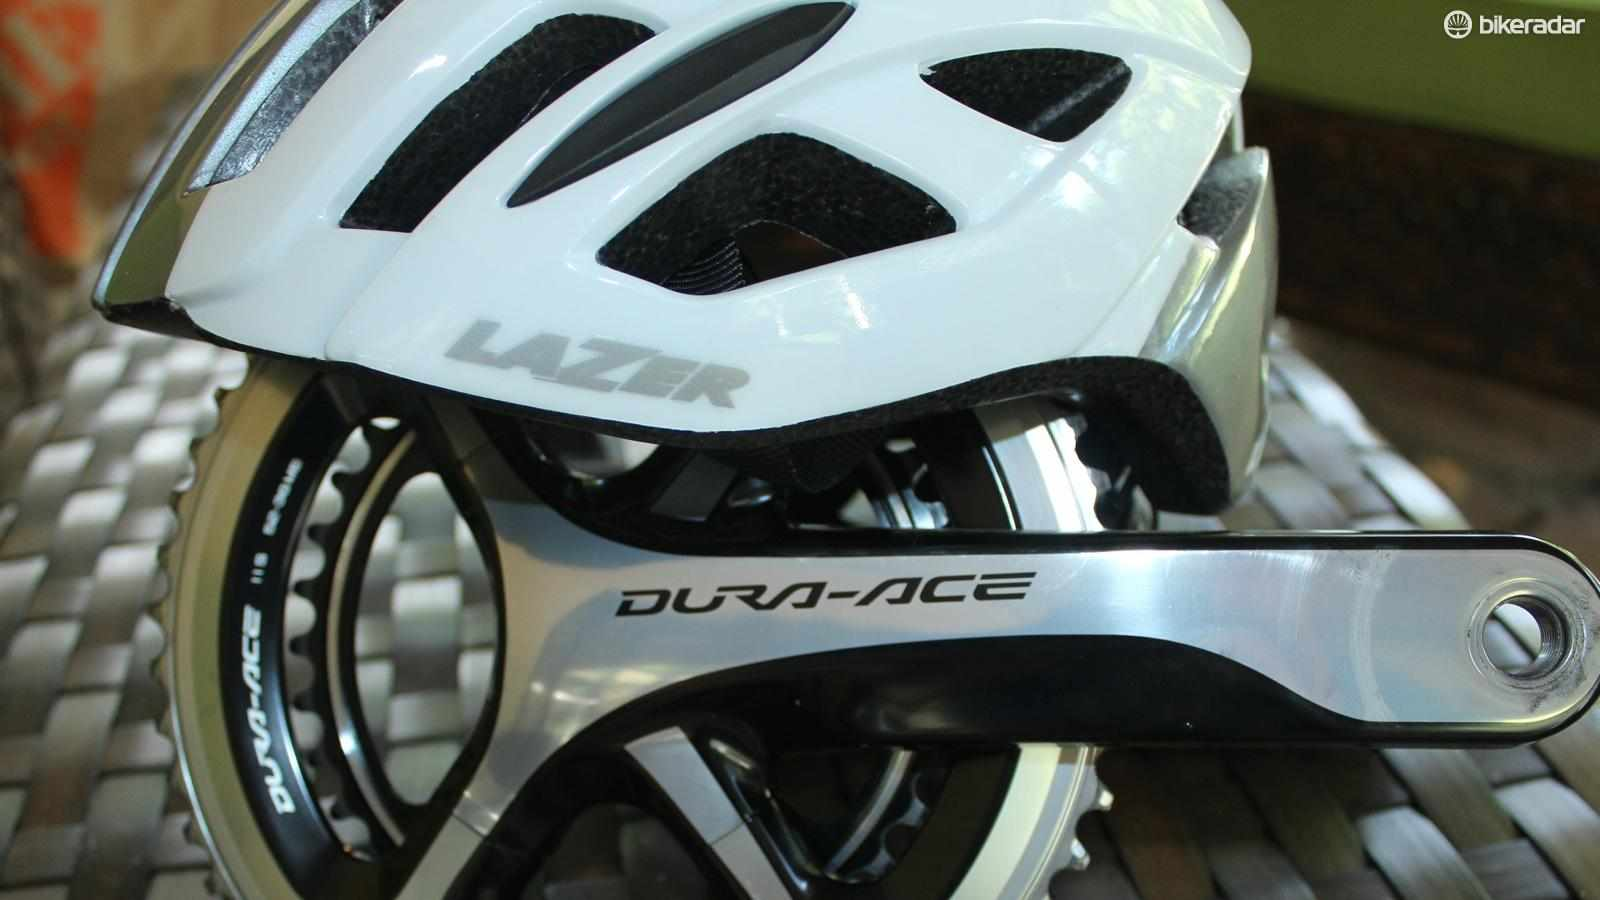 Lazer and Shimano will soon be one company